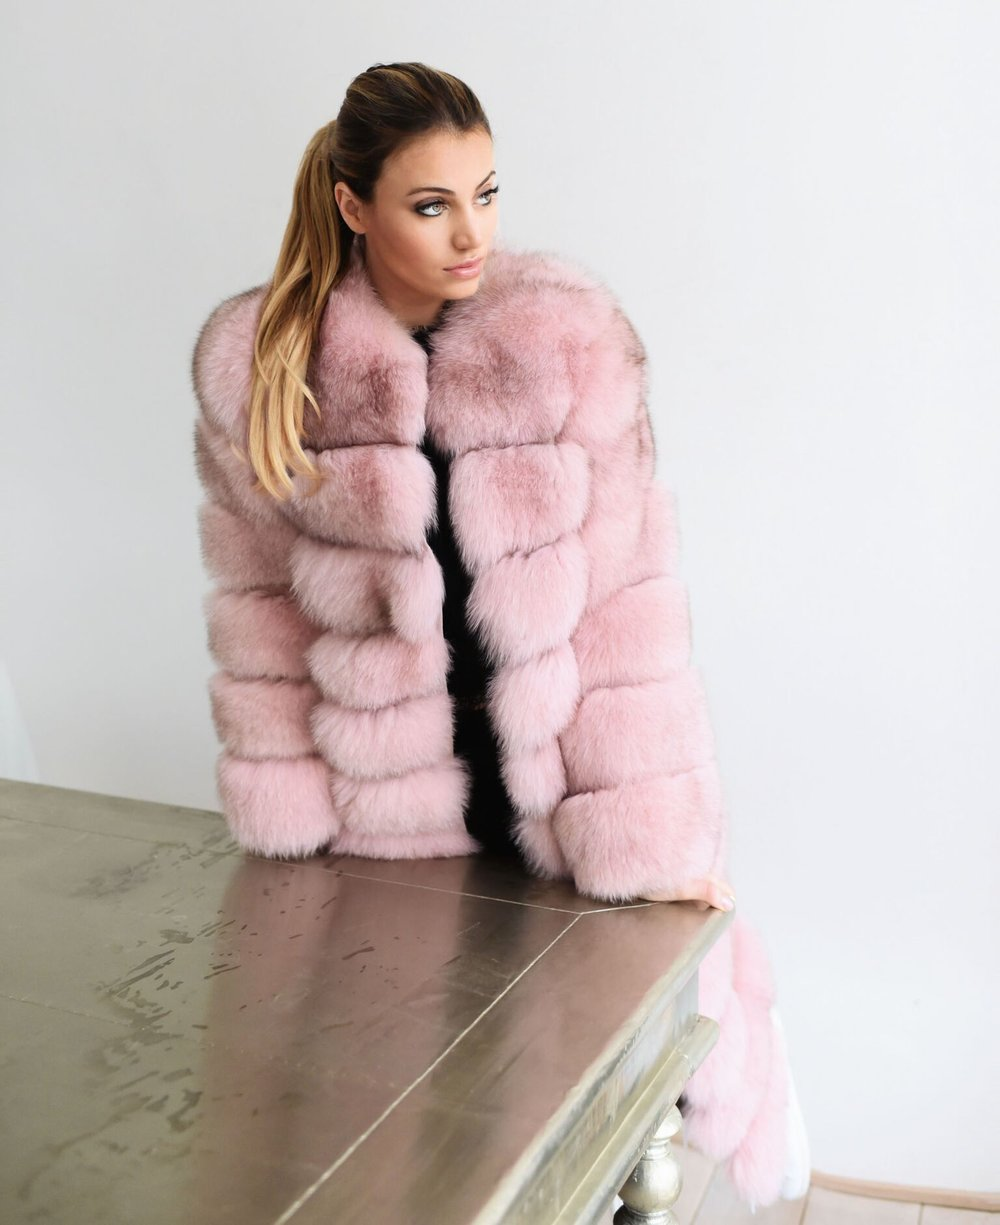 Maureen Kragt London based Fashion blogger and culture editor for the BOEmagazine.com speaks about what it means to start a blog.   maureen is wearing a lola belle powder pink long fur coat.  Discover all her tips on reading the full article on BOEMAGAZINE.COM